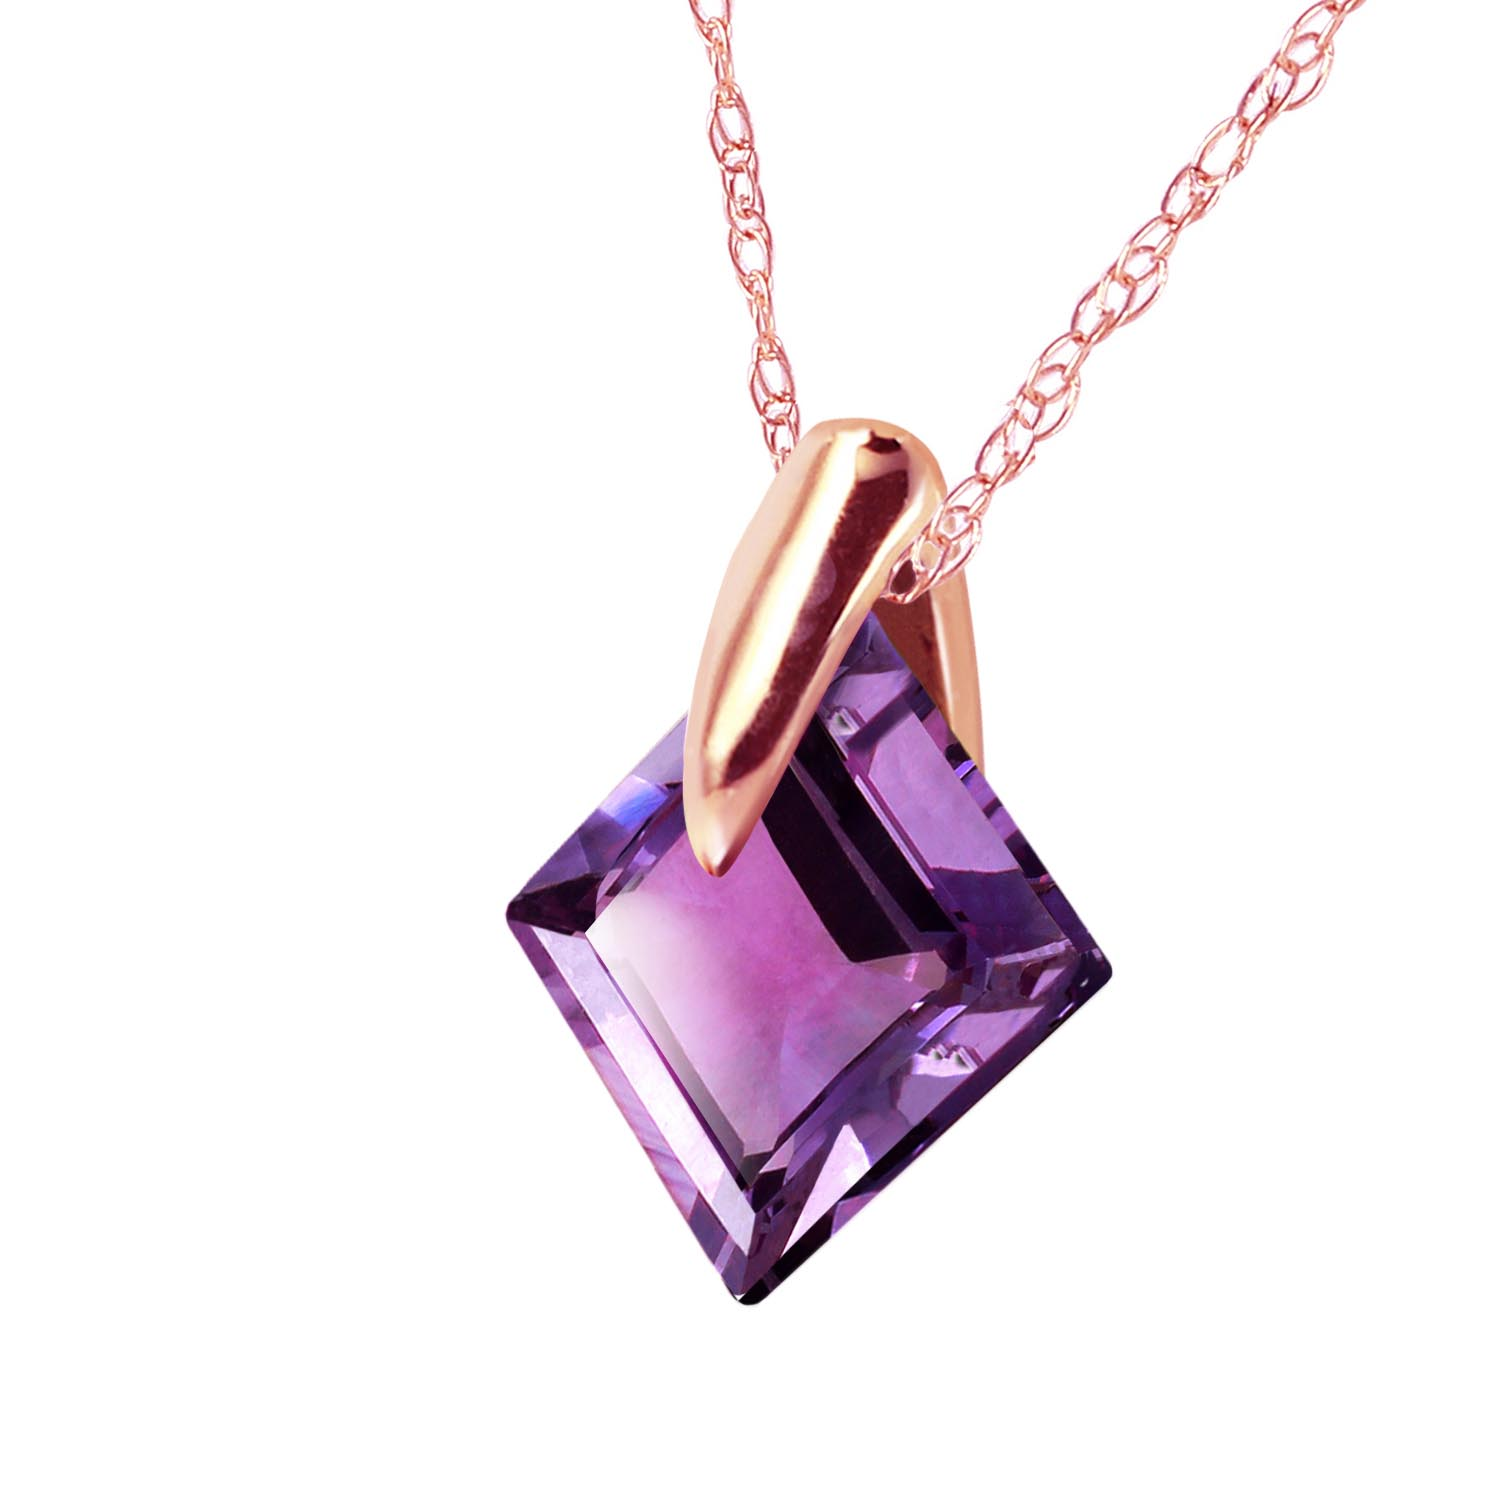 Square Cut Amethyst Pendant Necklace 1.16ct in 9ct Rose Gold